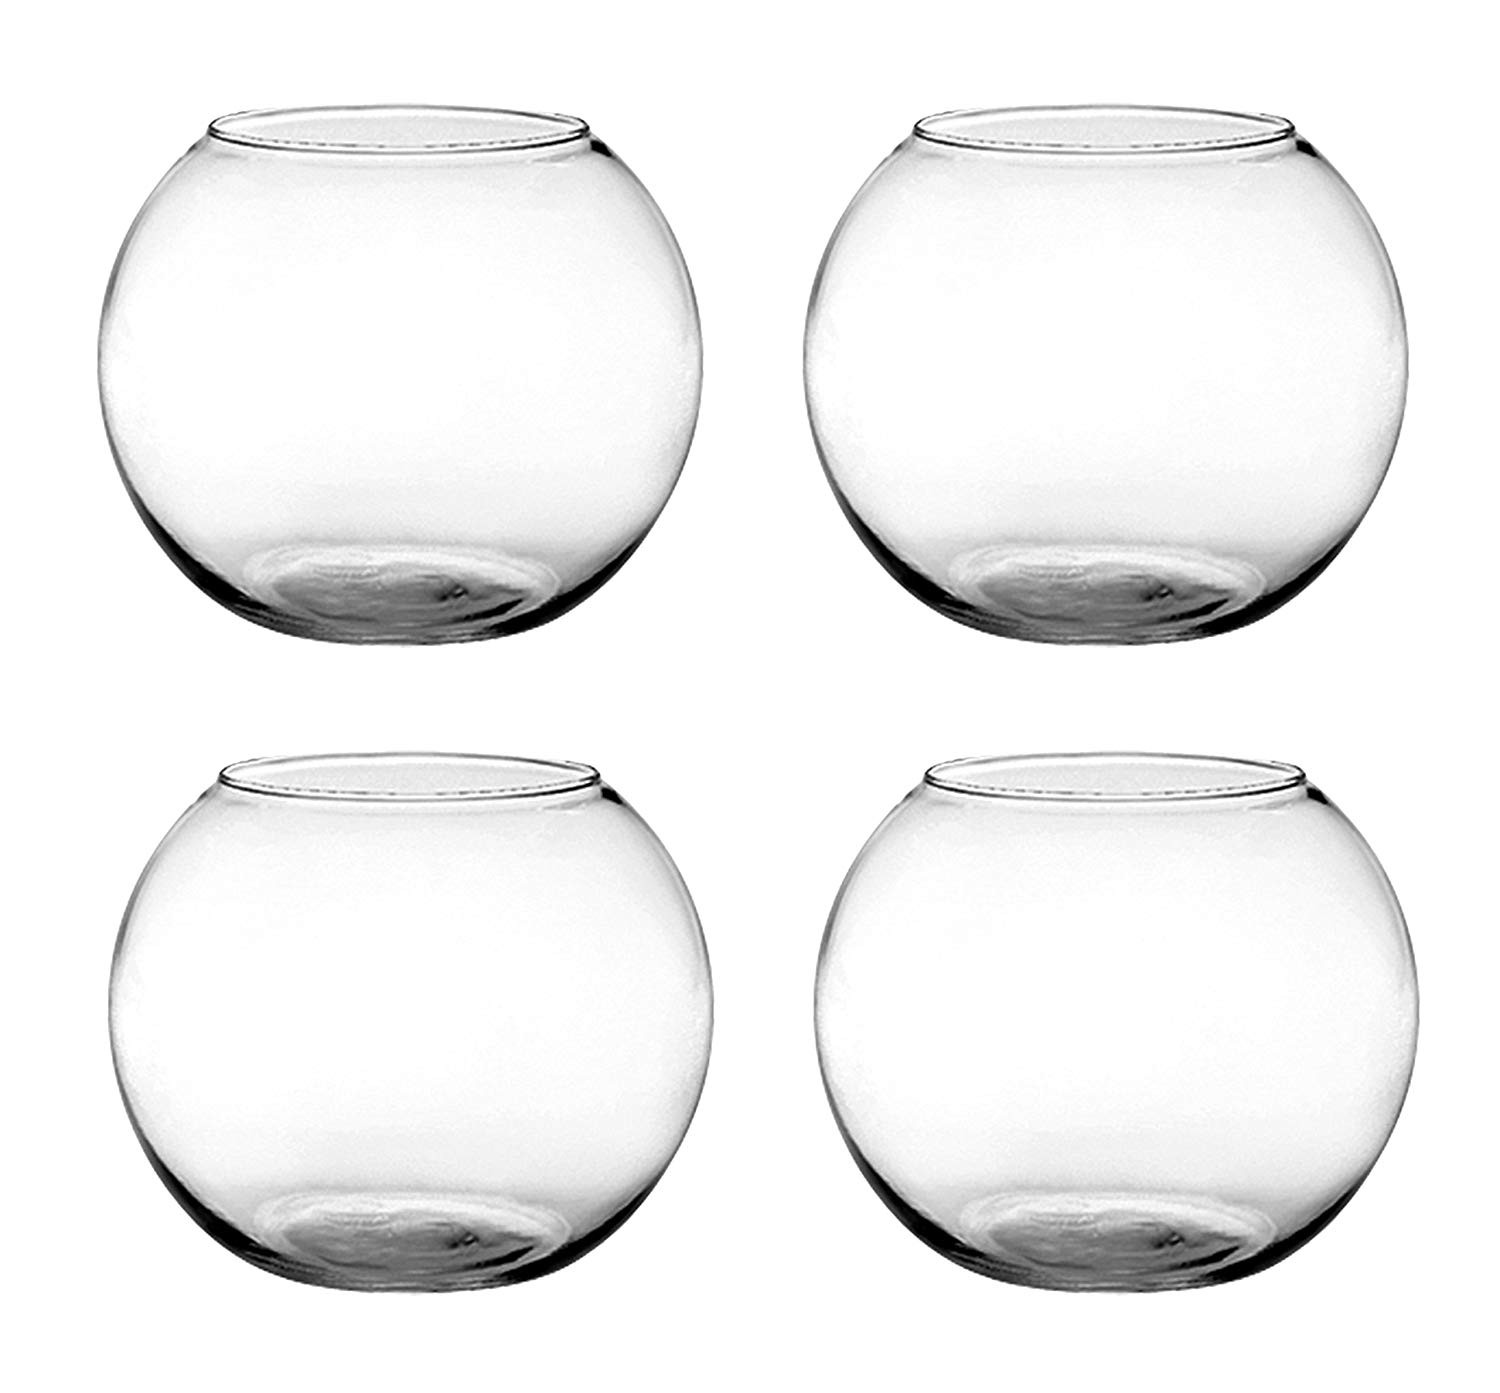 26 Nice Small Plastic Bud Vases 2021 free download small plastic bud vases of amazon com set of 4 syndicate sales 6 inches clear rose bowl in amazon com set of 4 syndicate sales 6 inches clear rose bowl bundled by maven gifts garden outdoor